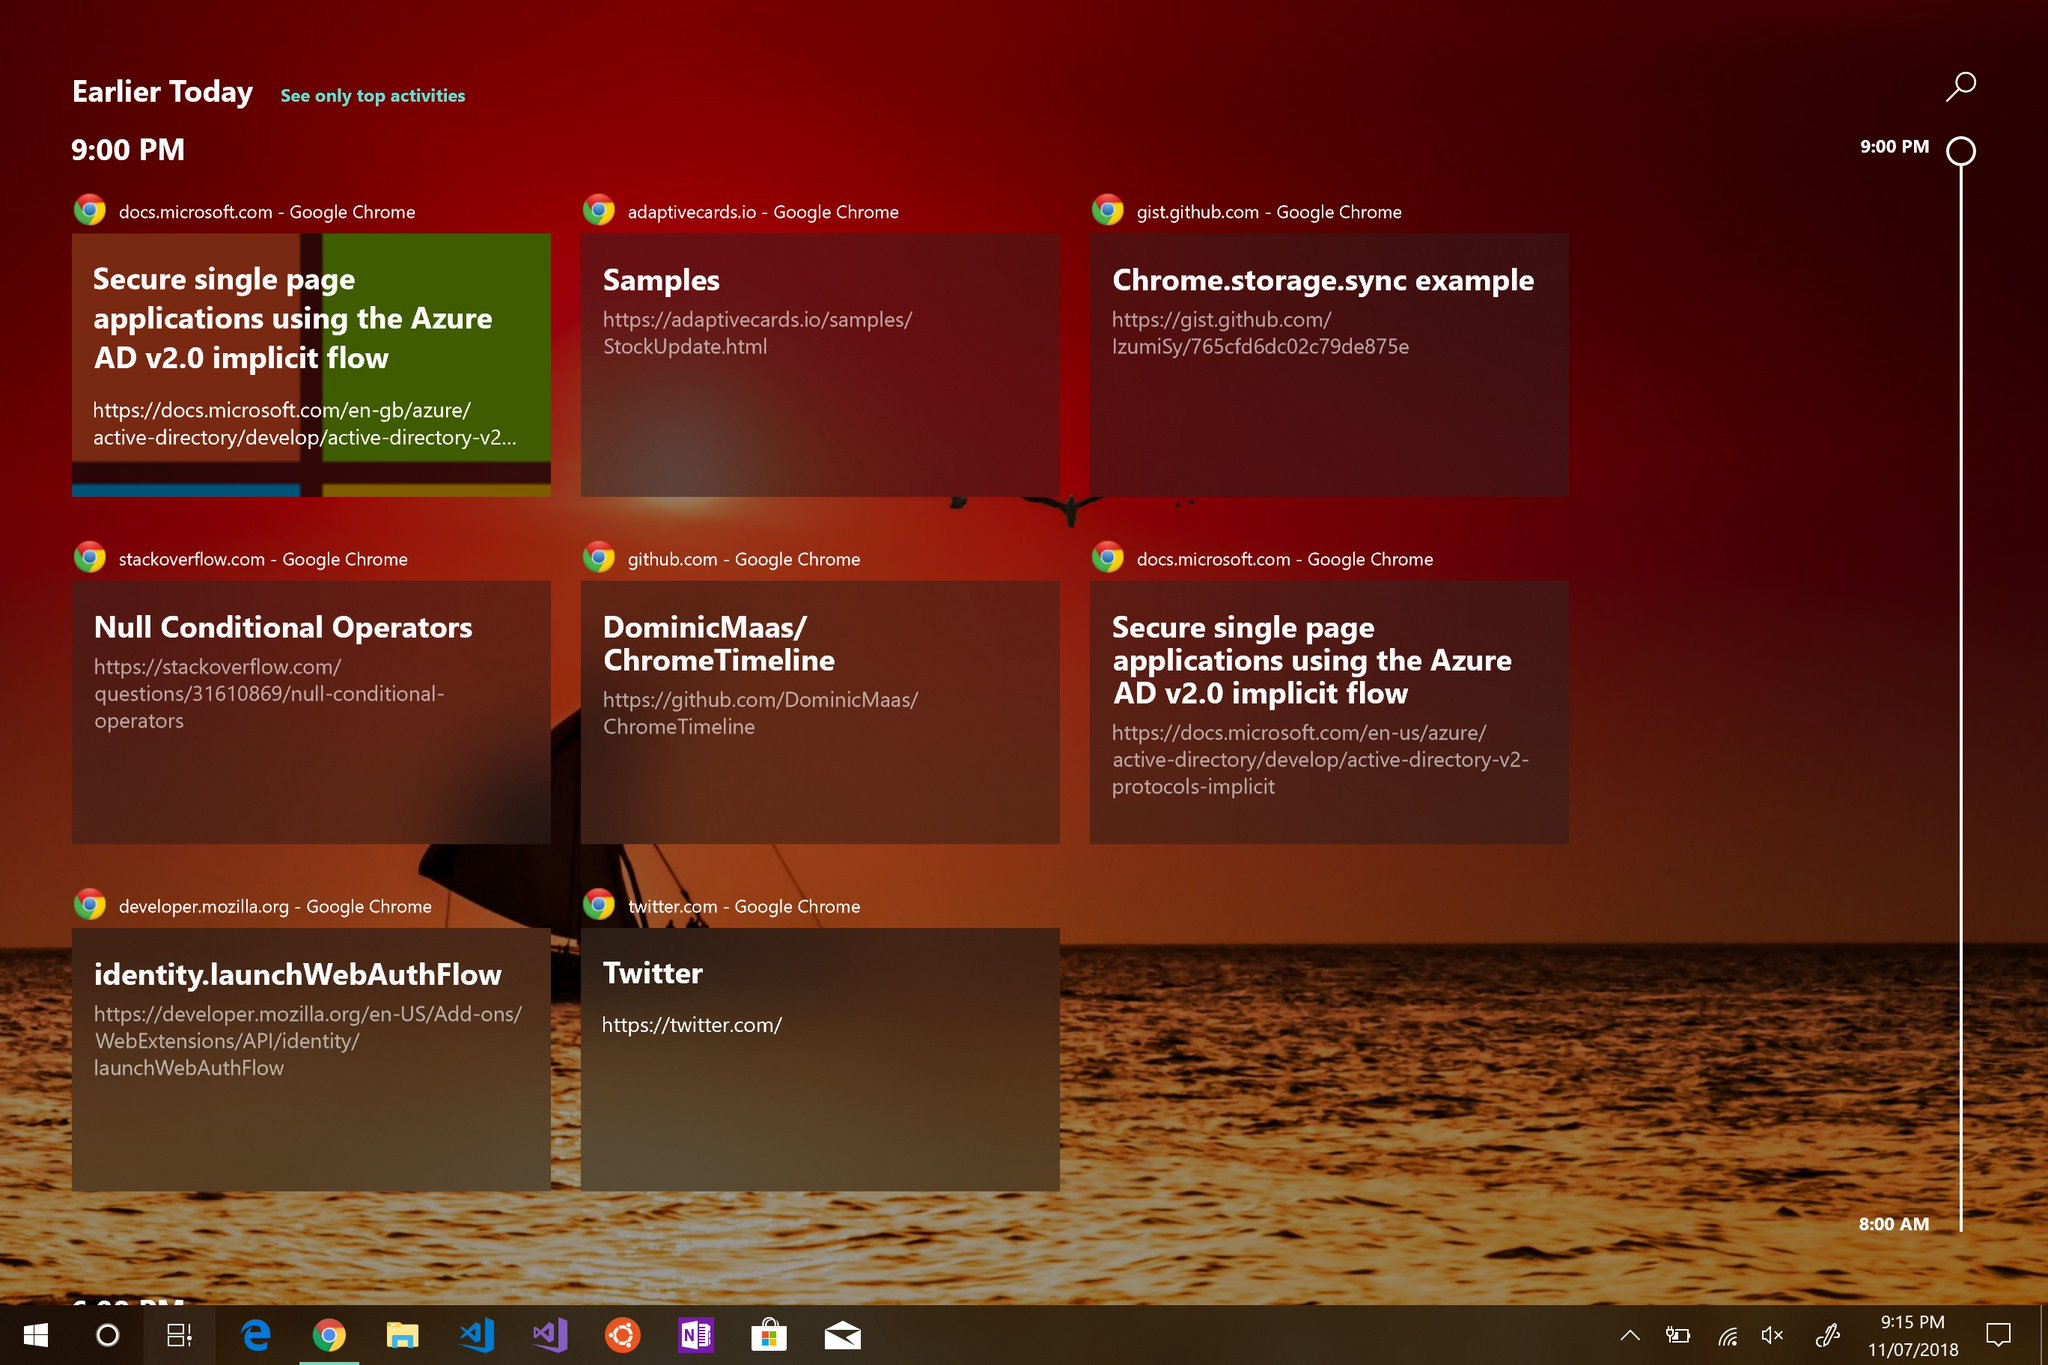 chrome free download for windows 10